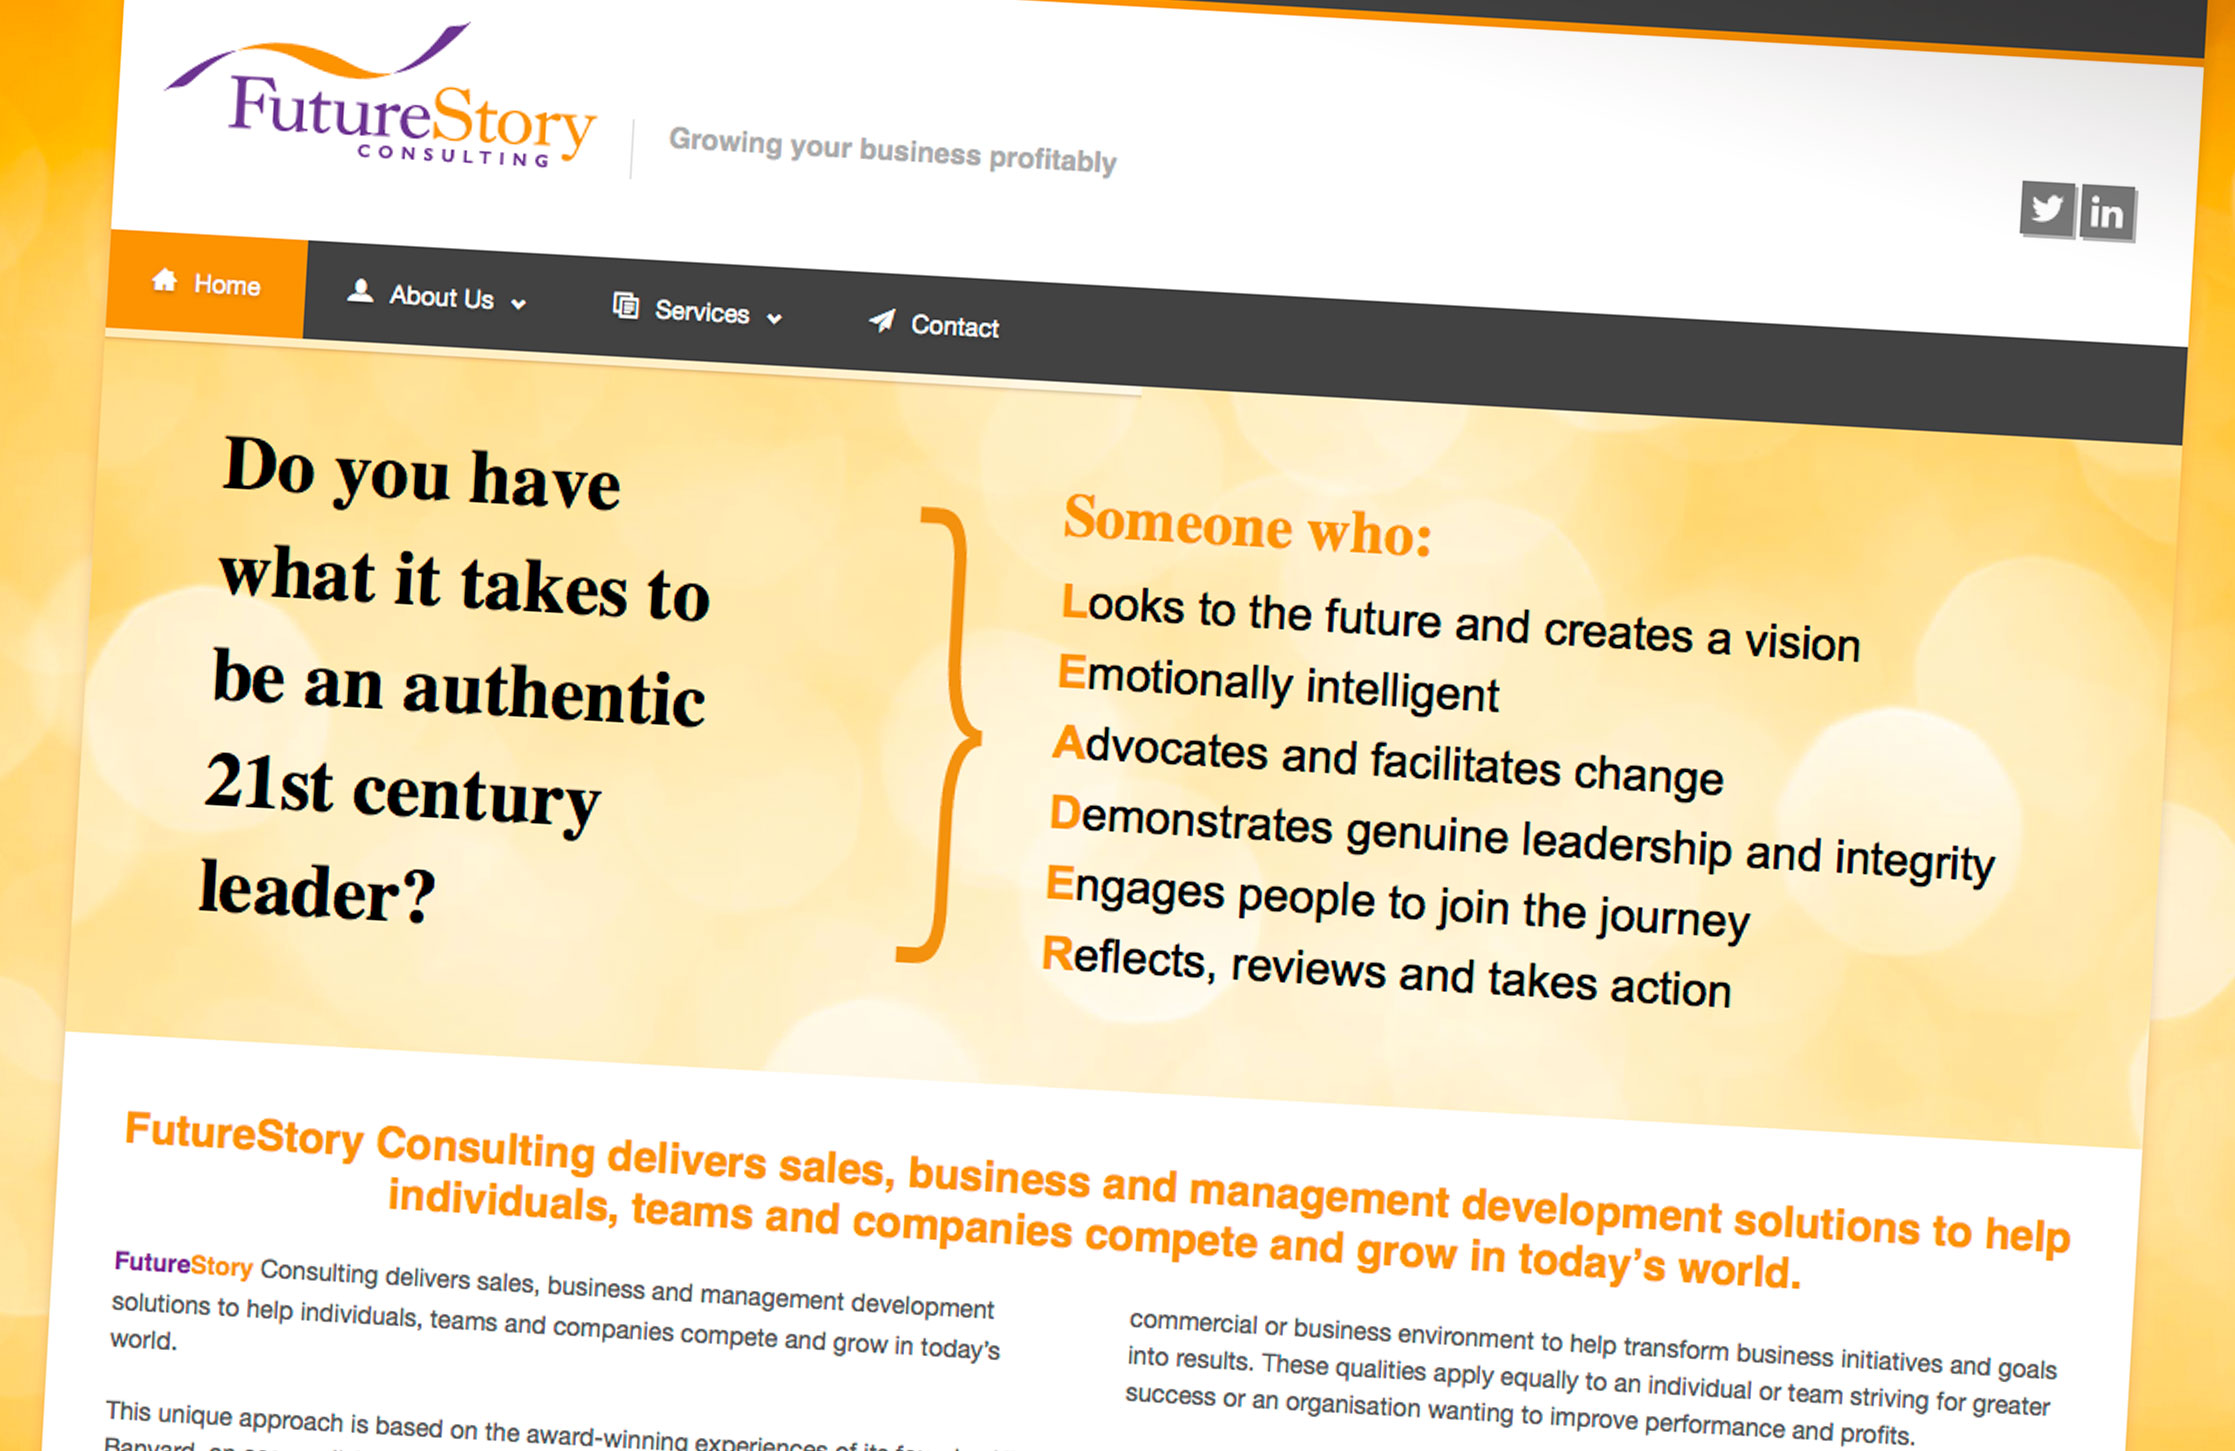 Design elements and populate Wordpress website for FutureStory Consulting